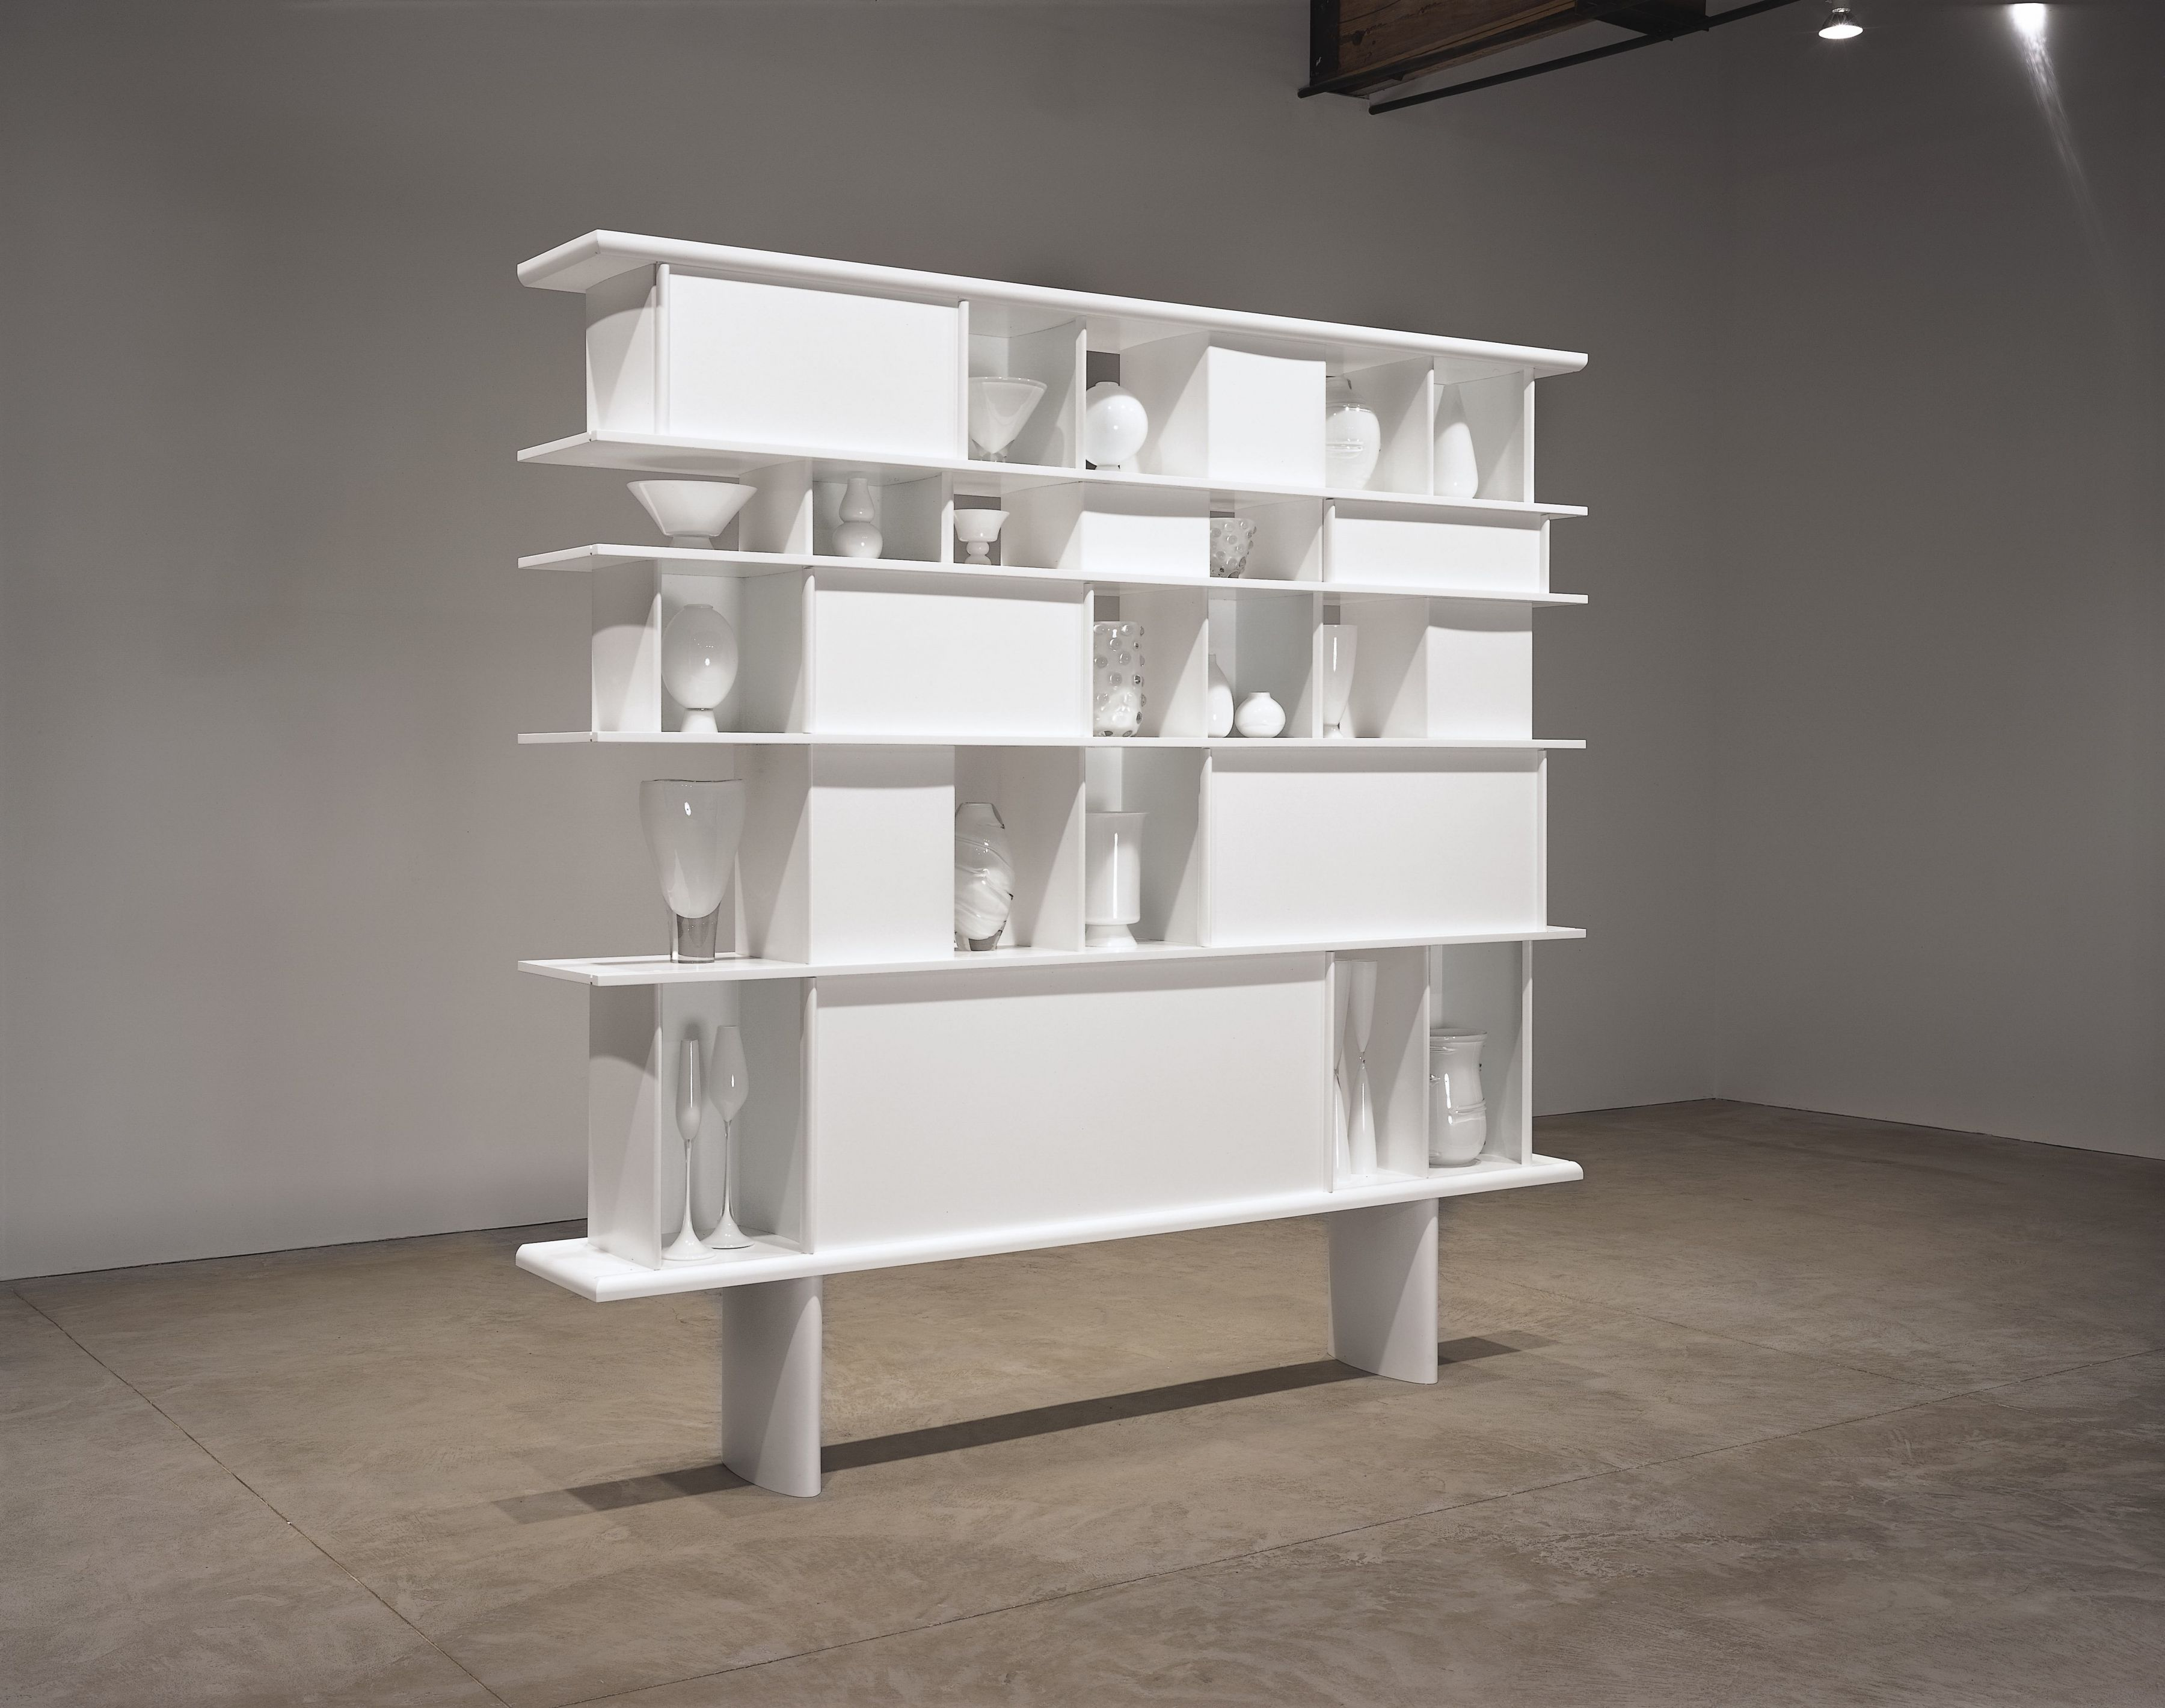 JOSIAH McELHENY, Charlotte Perriand, Carlo Scarpa, some others (White)